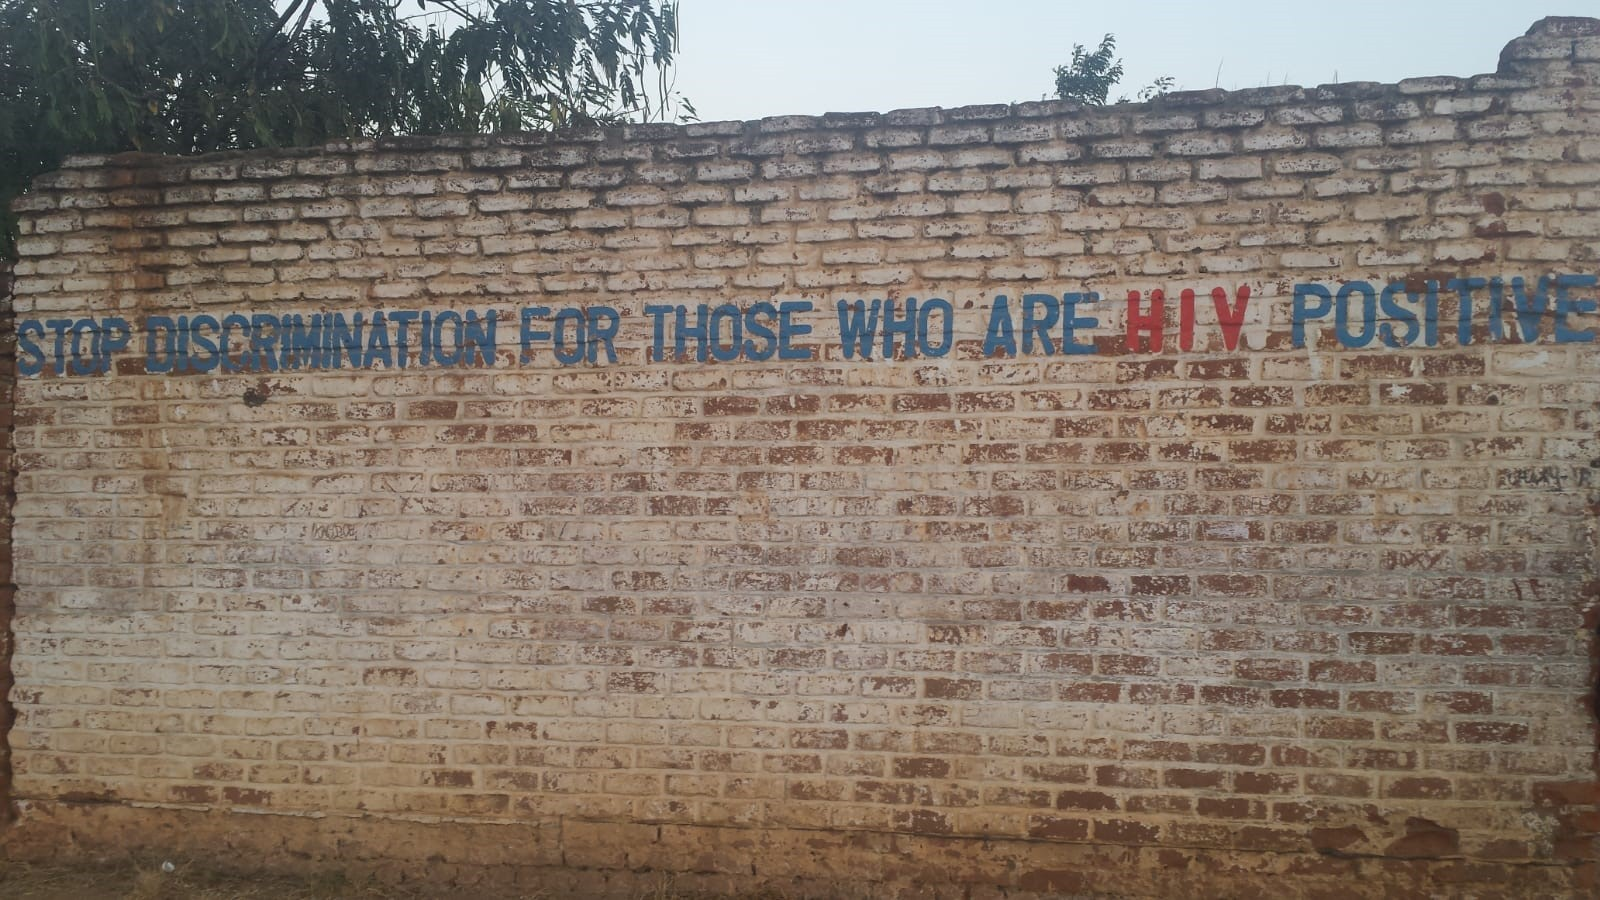 An anti-discrimination message written on a wall in Lilongwe.